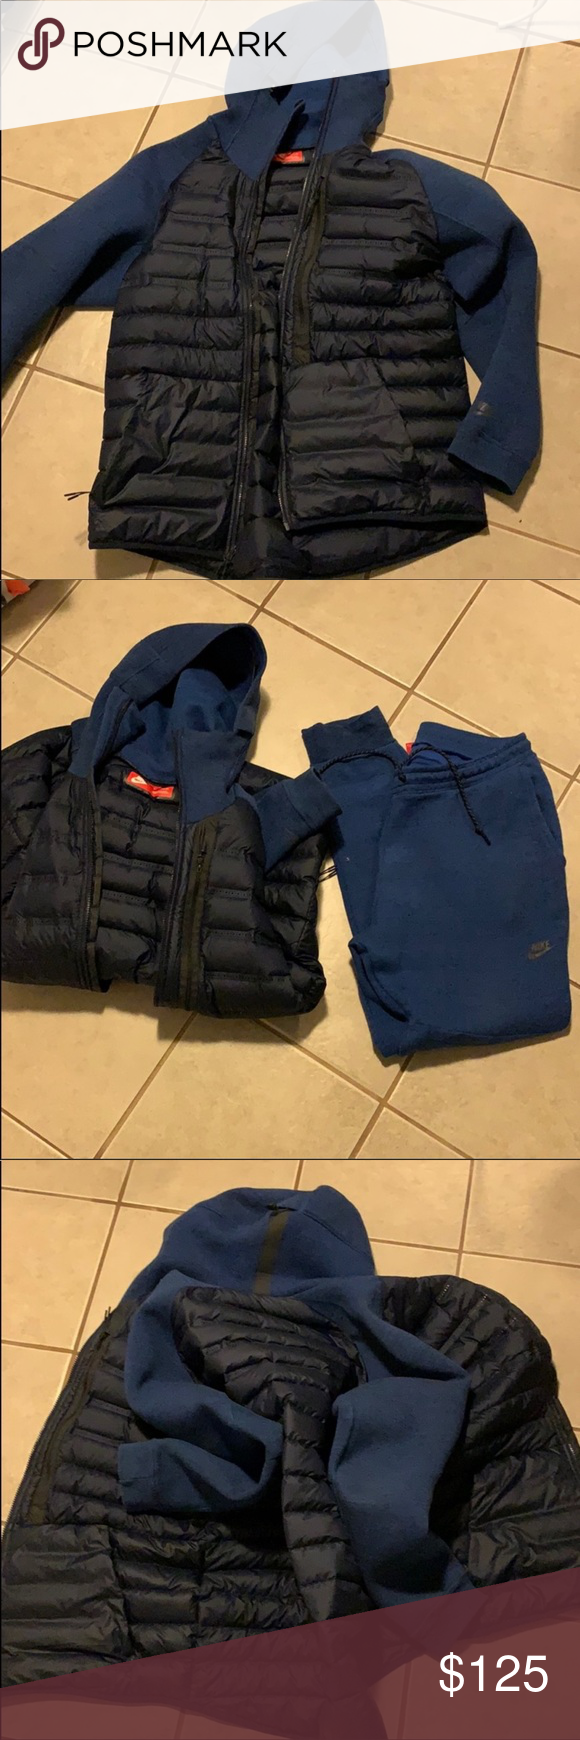 Nike tech suit Excellent condition Nike Other Nike tech